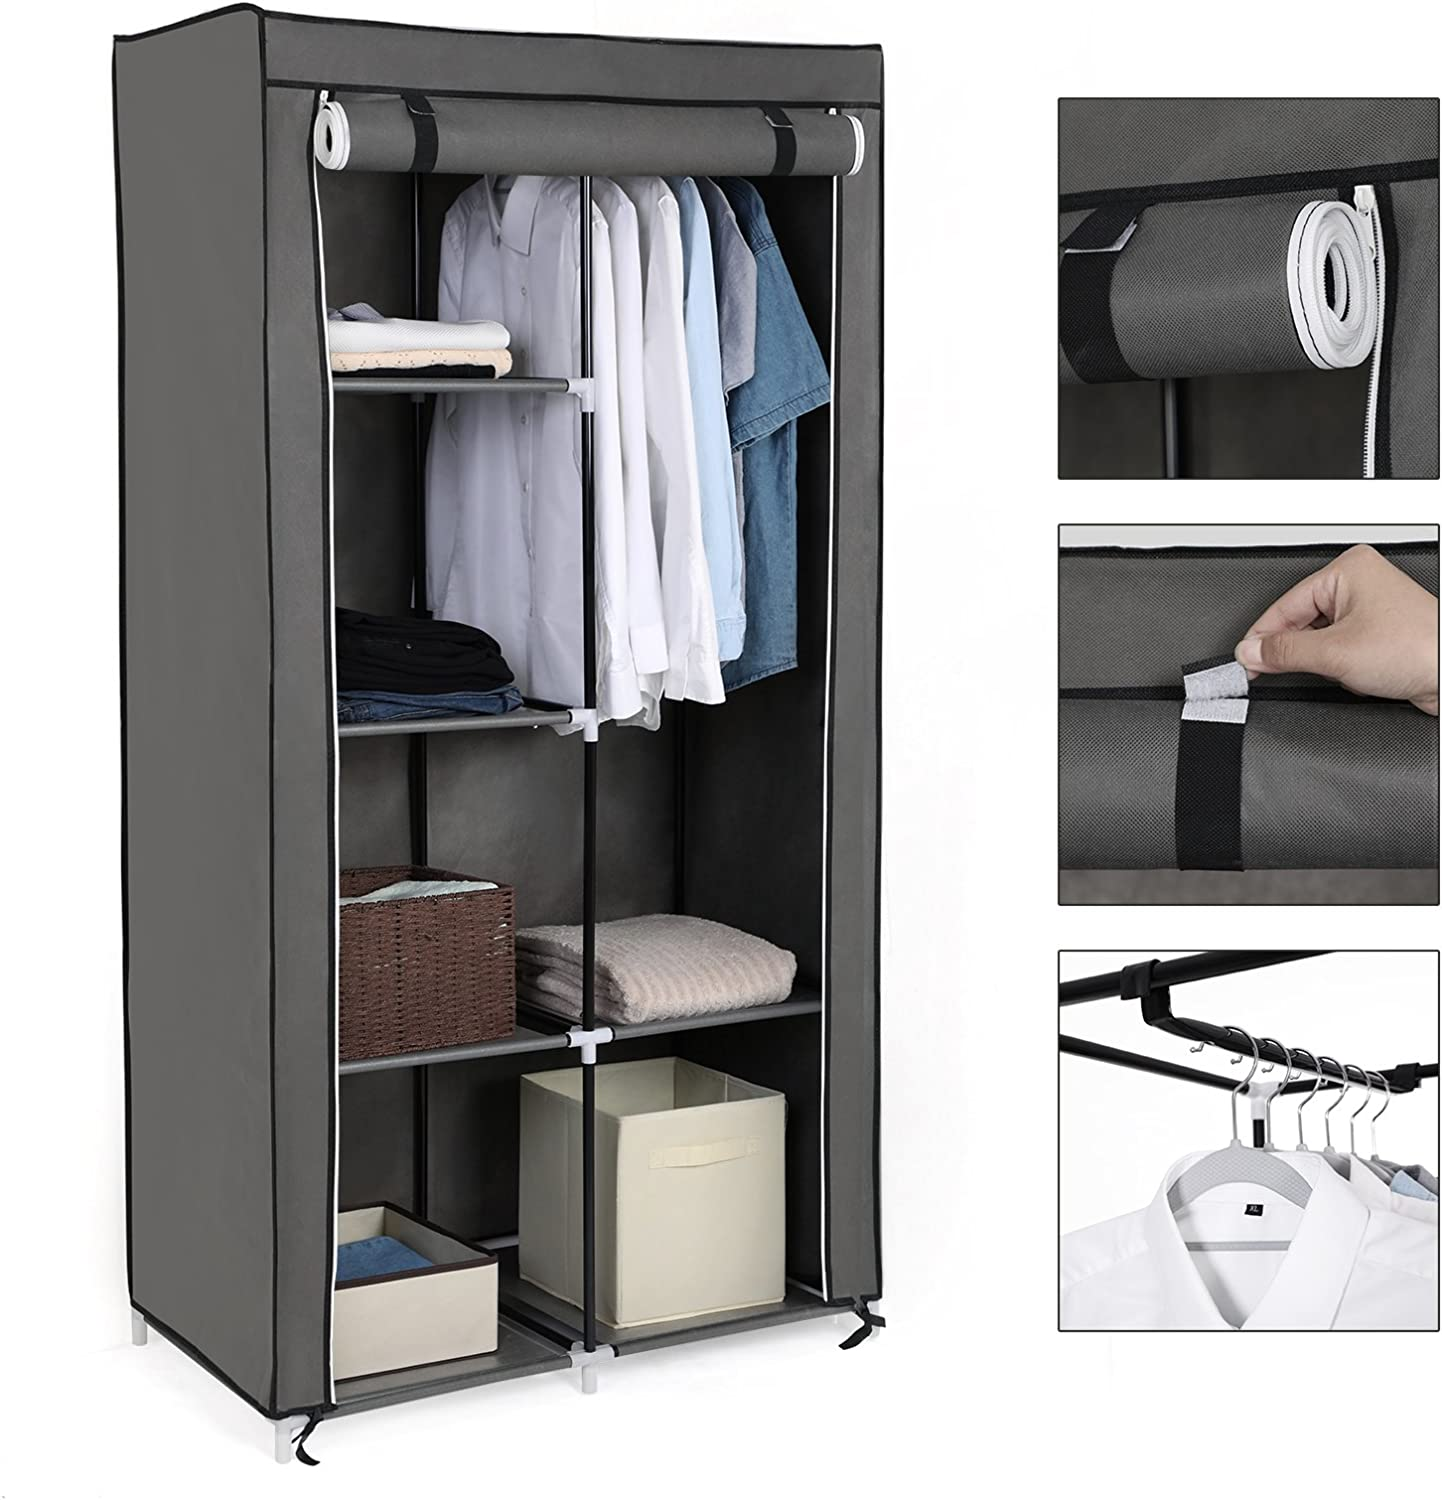 Grey RYG84G SONGMICS Double Canvas Wardrobe with 2 Hanging Rail W x D x H holds up to 25kg Clothes Storage Organiser 7 different assembly Methods for Bedroom 88 x 45 x 170 cm